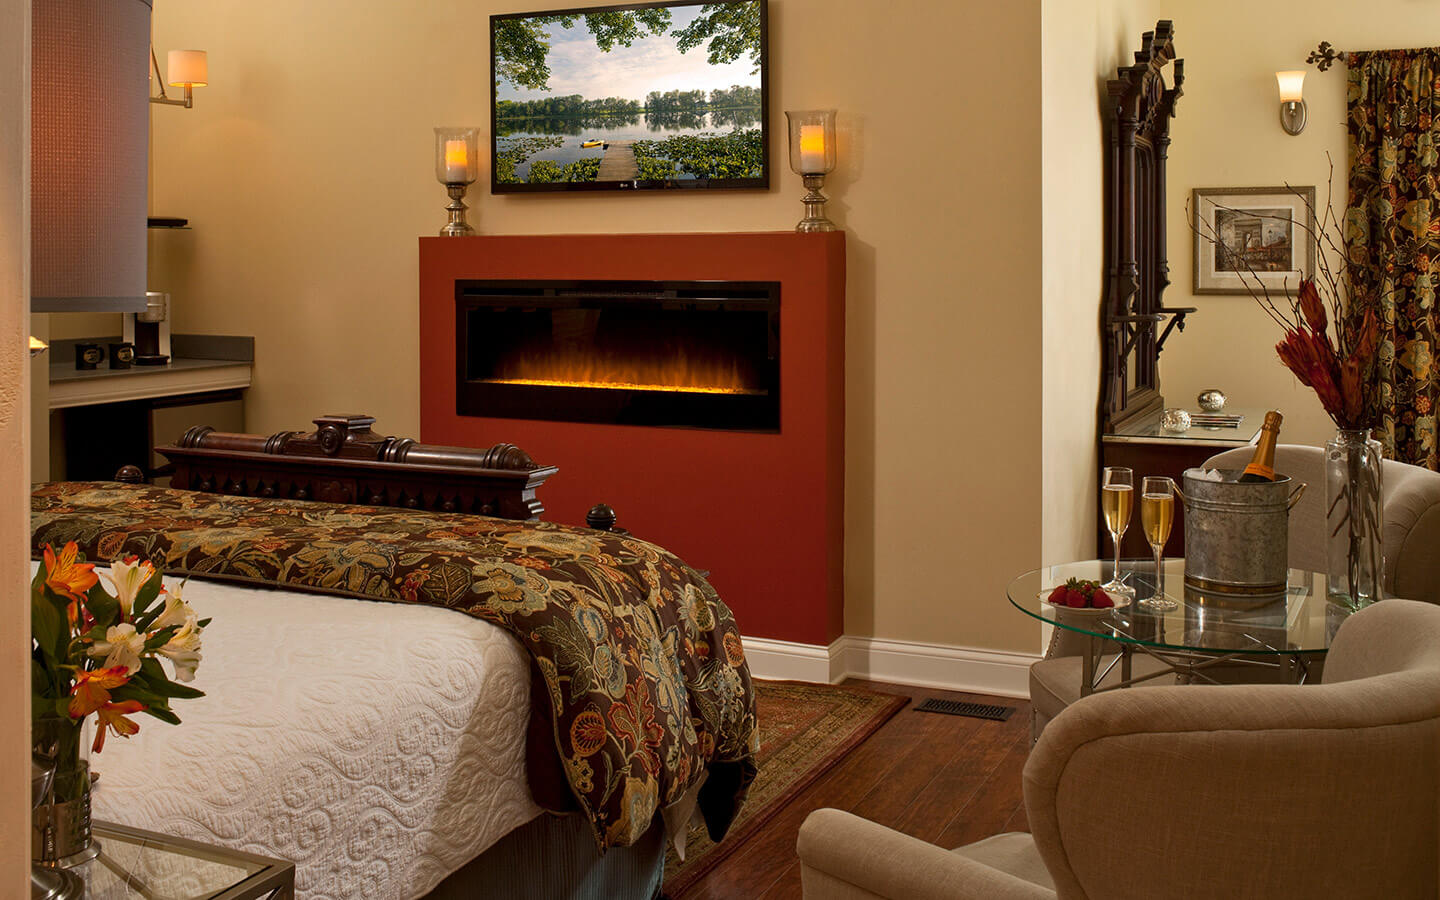 Camelot Suite with summer photo on TV and crystal fireplace